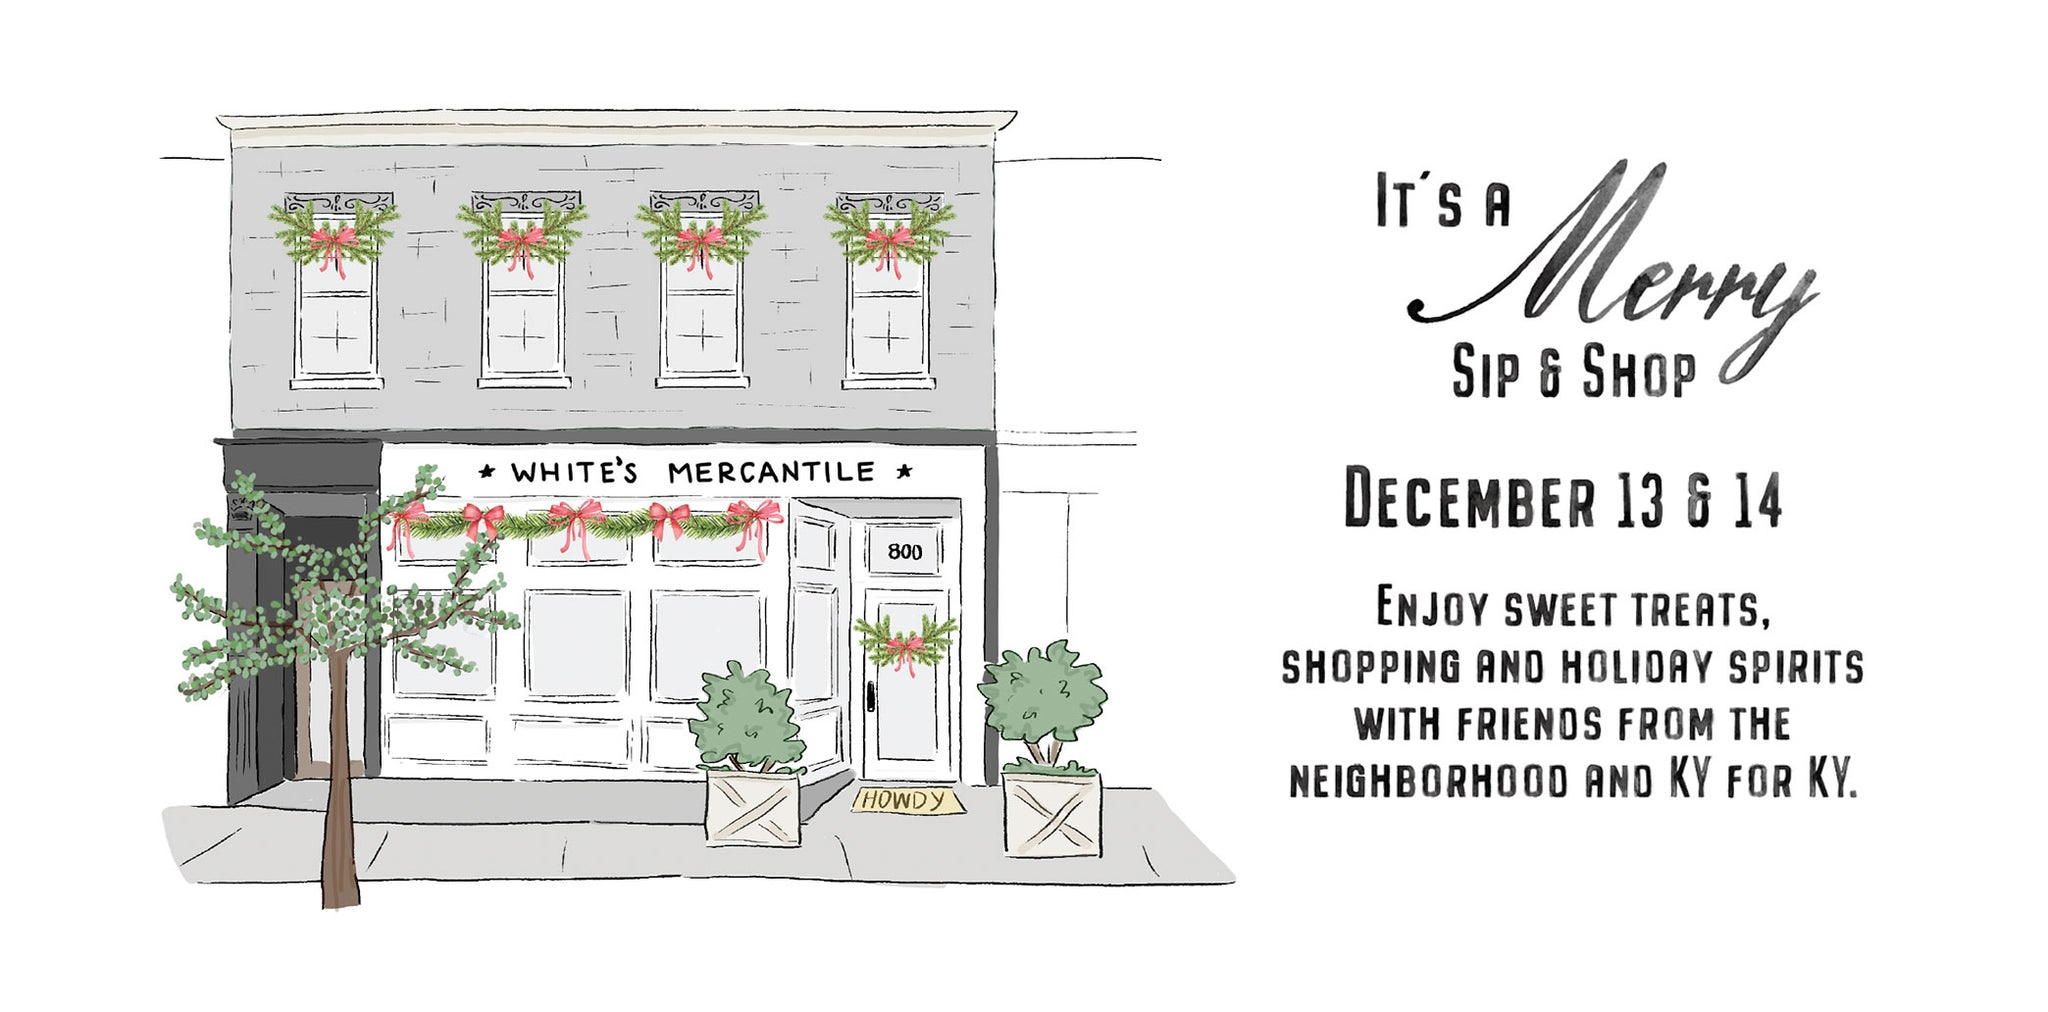 Sip & Shop at White's Mercantile Louisville Dec 13 - 14